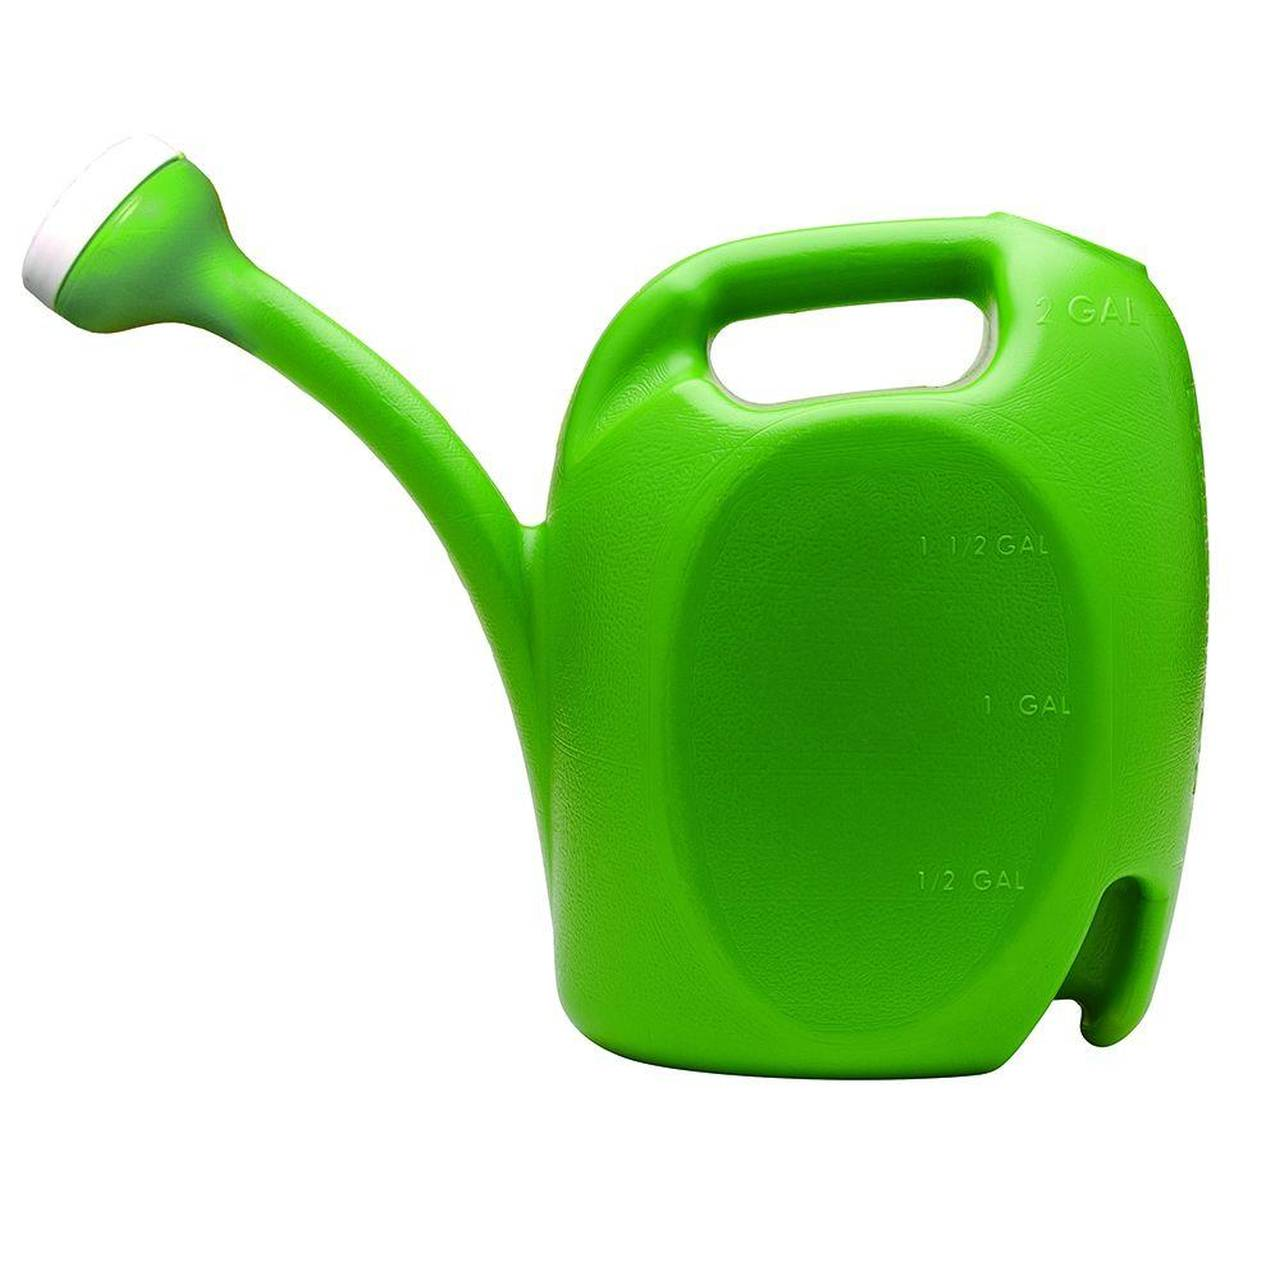 A watering can is one of the neccesary tools to work in your garden